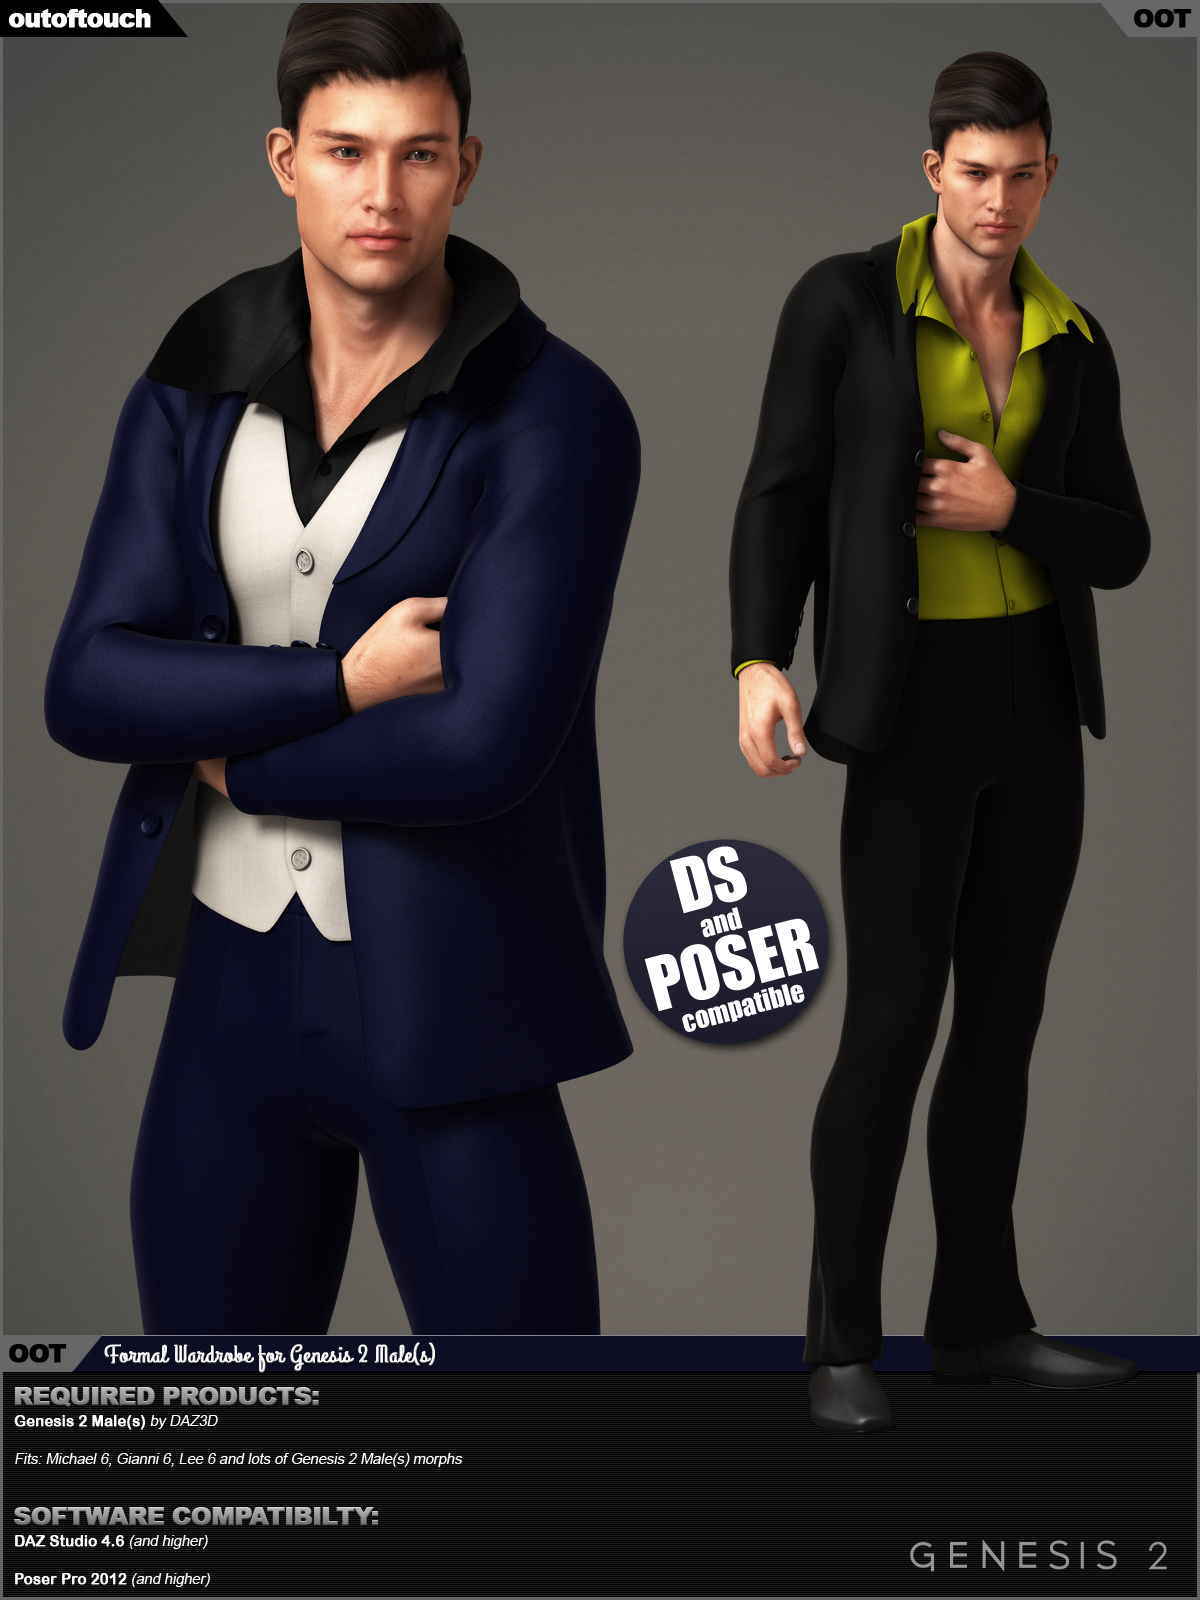 Formal Wardrobe for Genesis 2 Male(s)